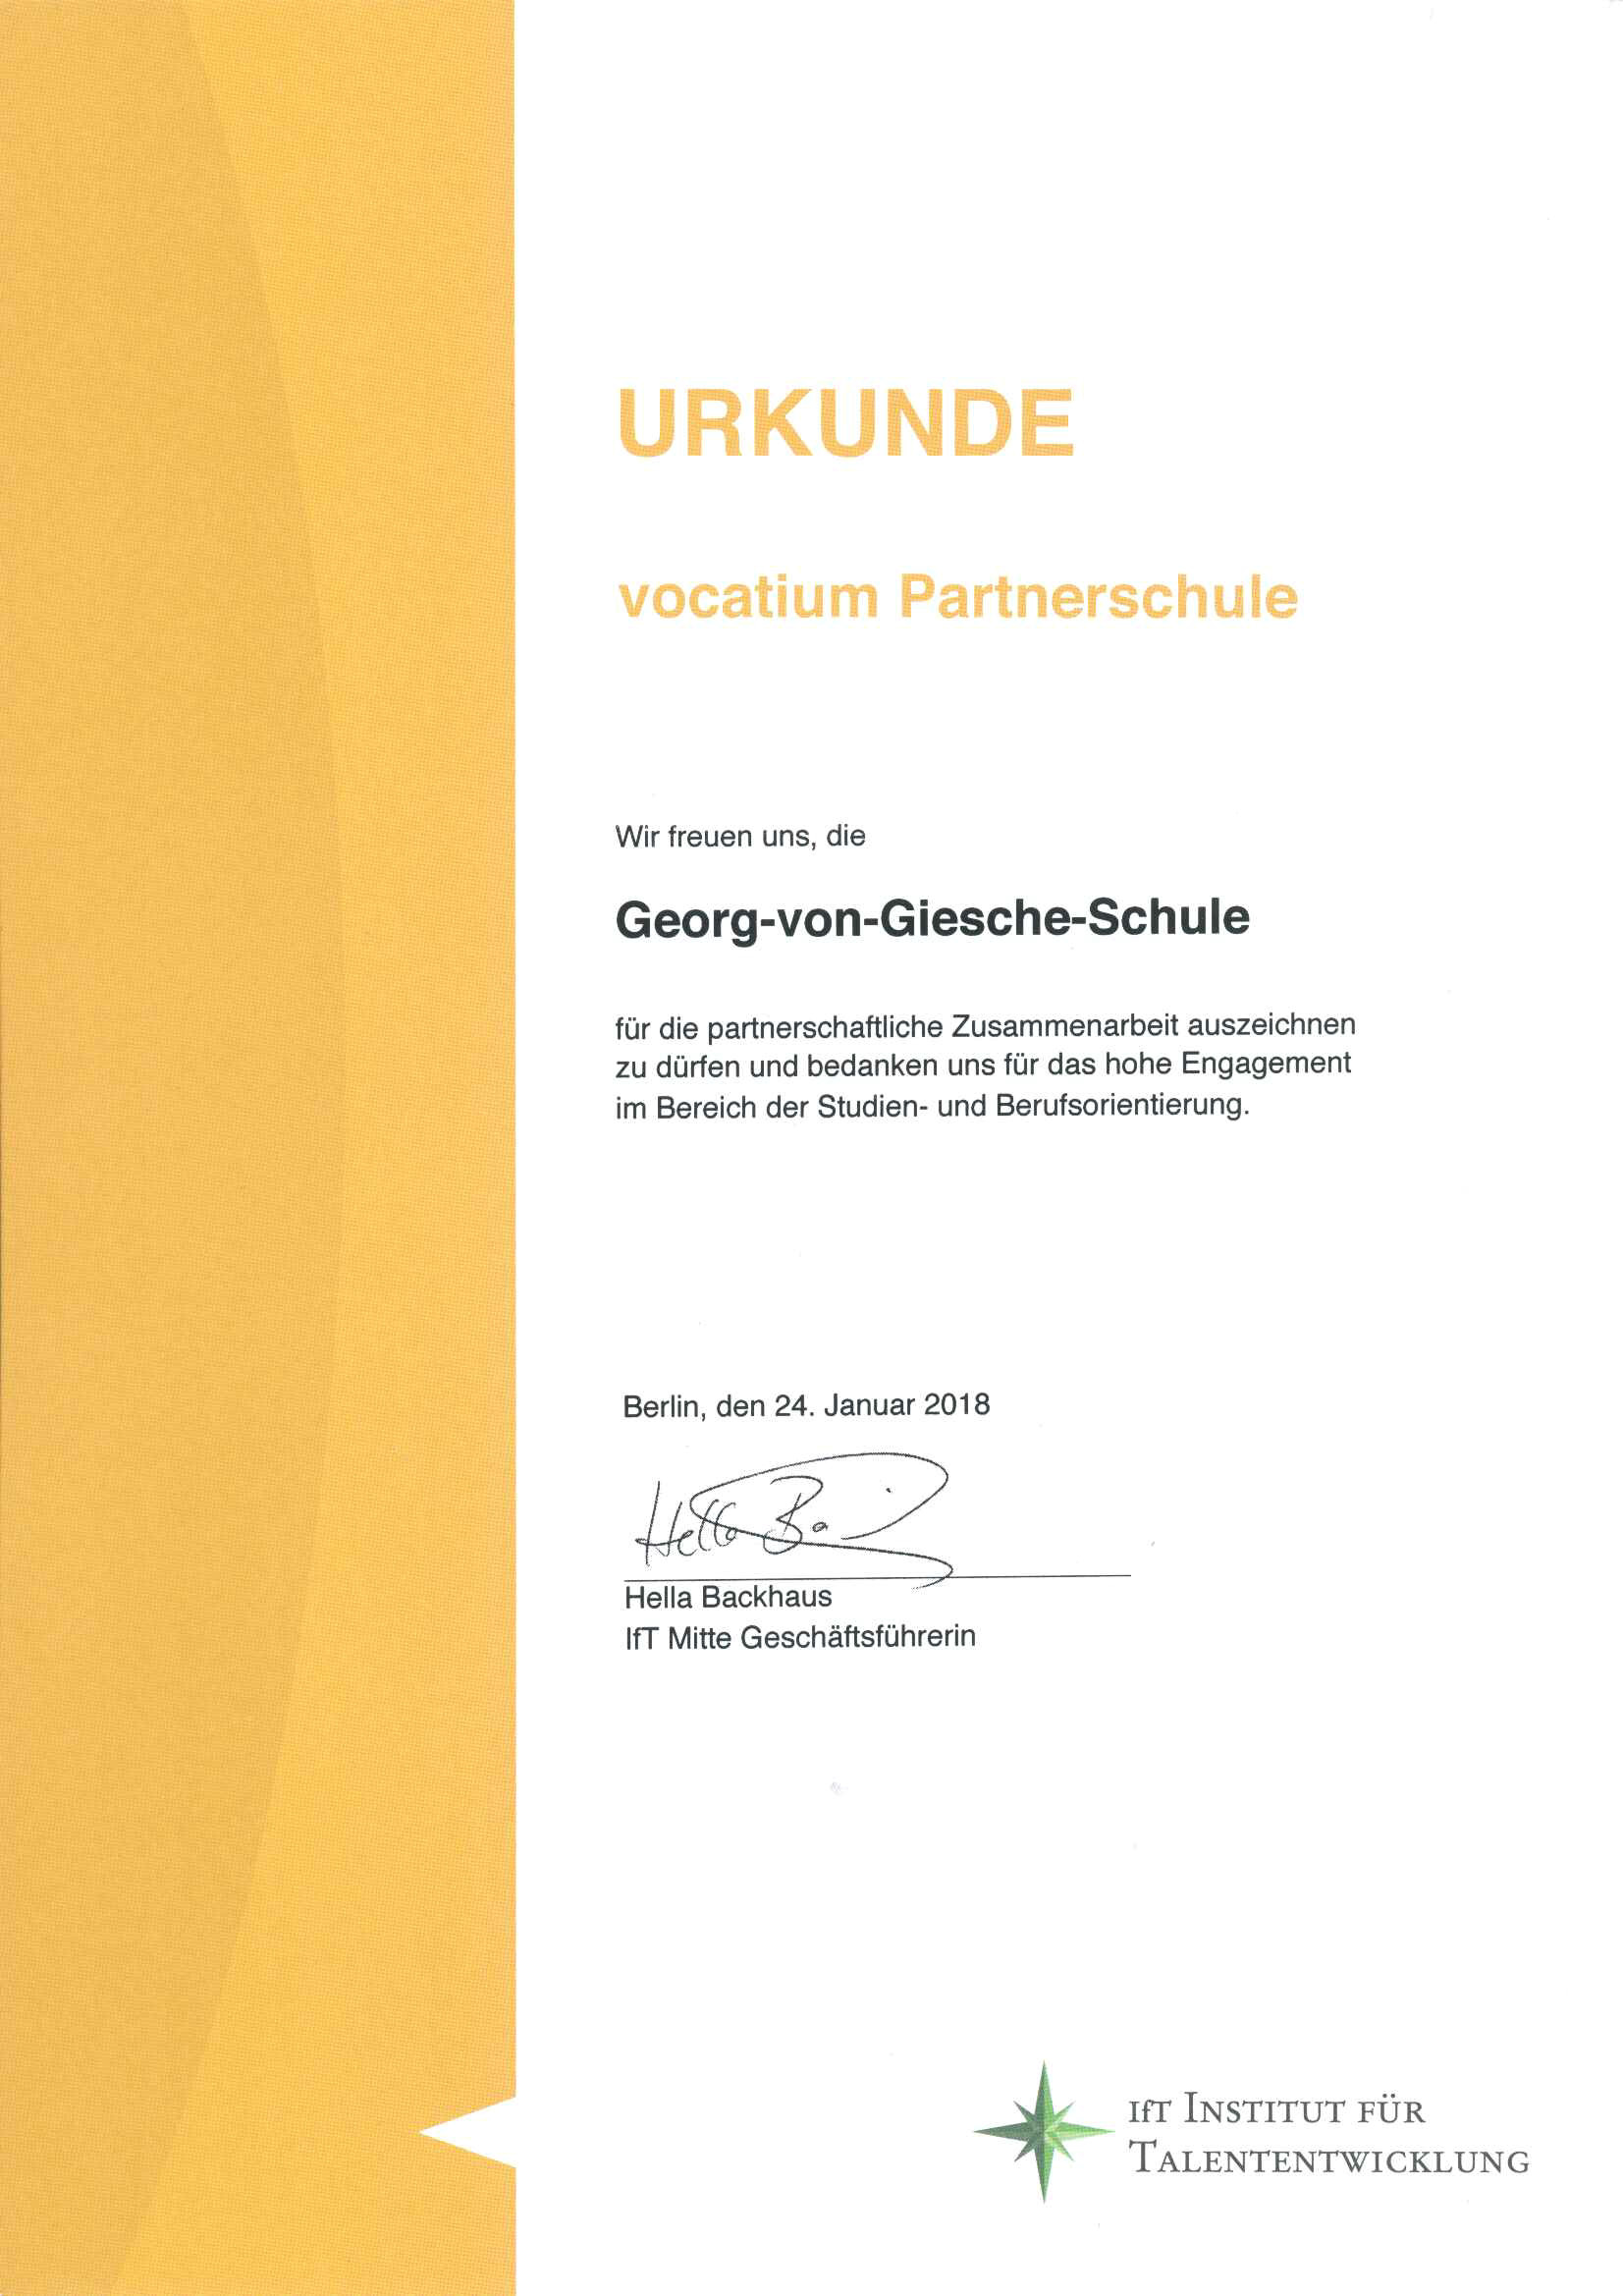 Urkunde vocatium Partnerschule